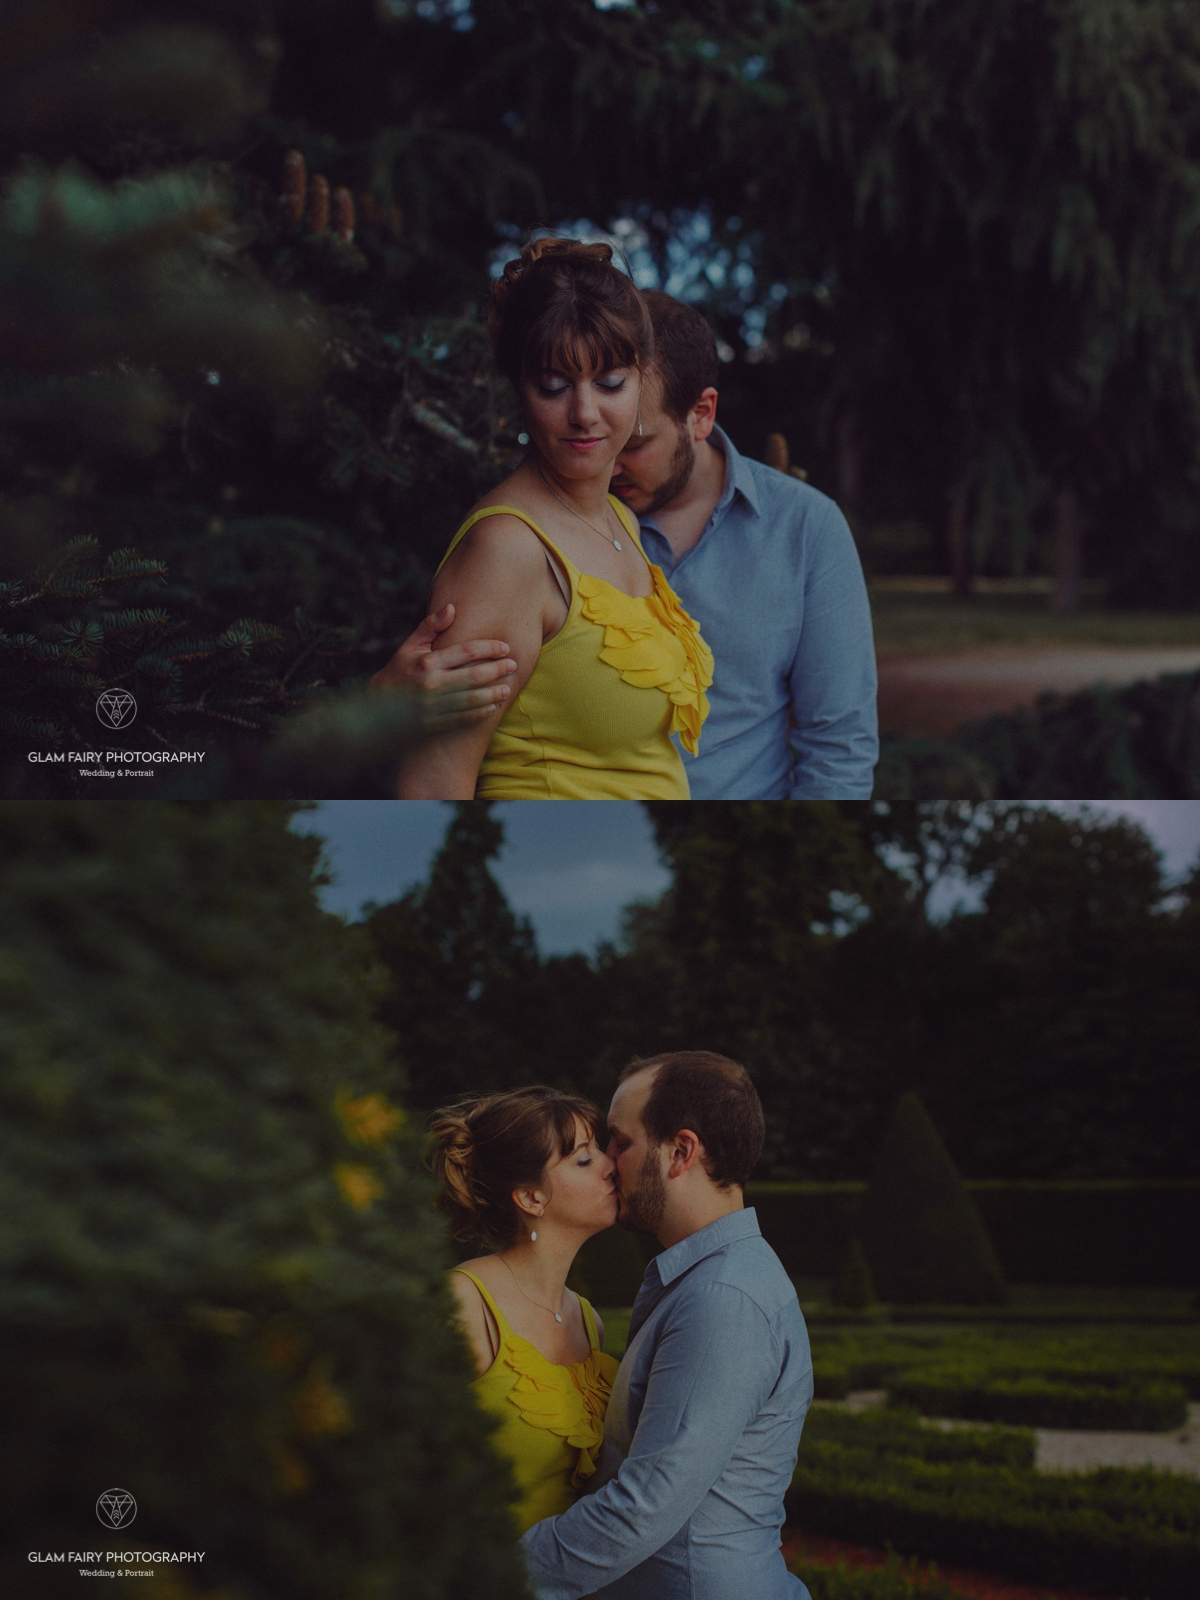 glamfairyphotography-seance-photo-couple-parc-de-sceaux-ophelie_0011